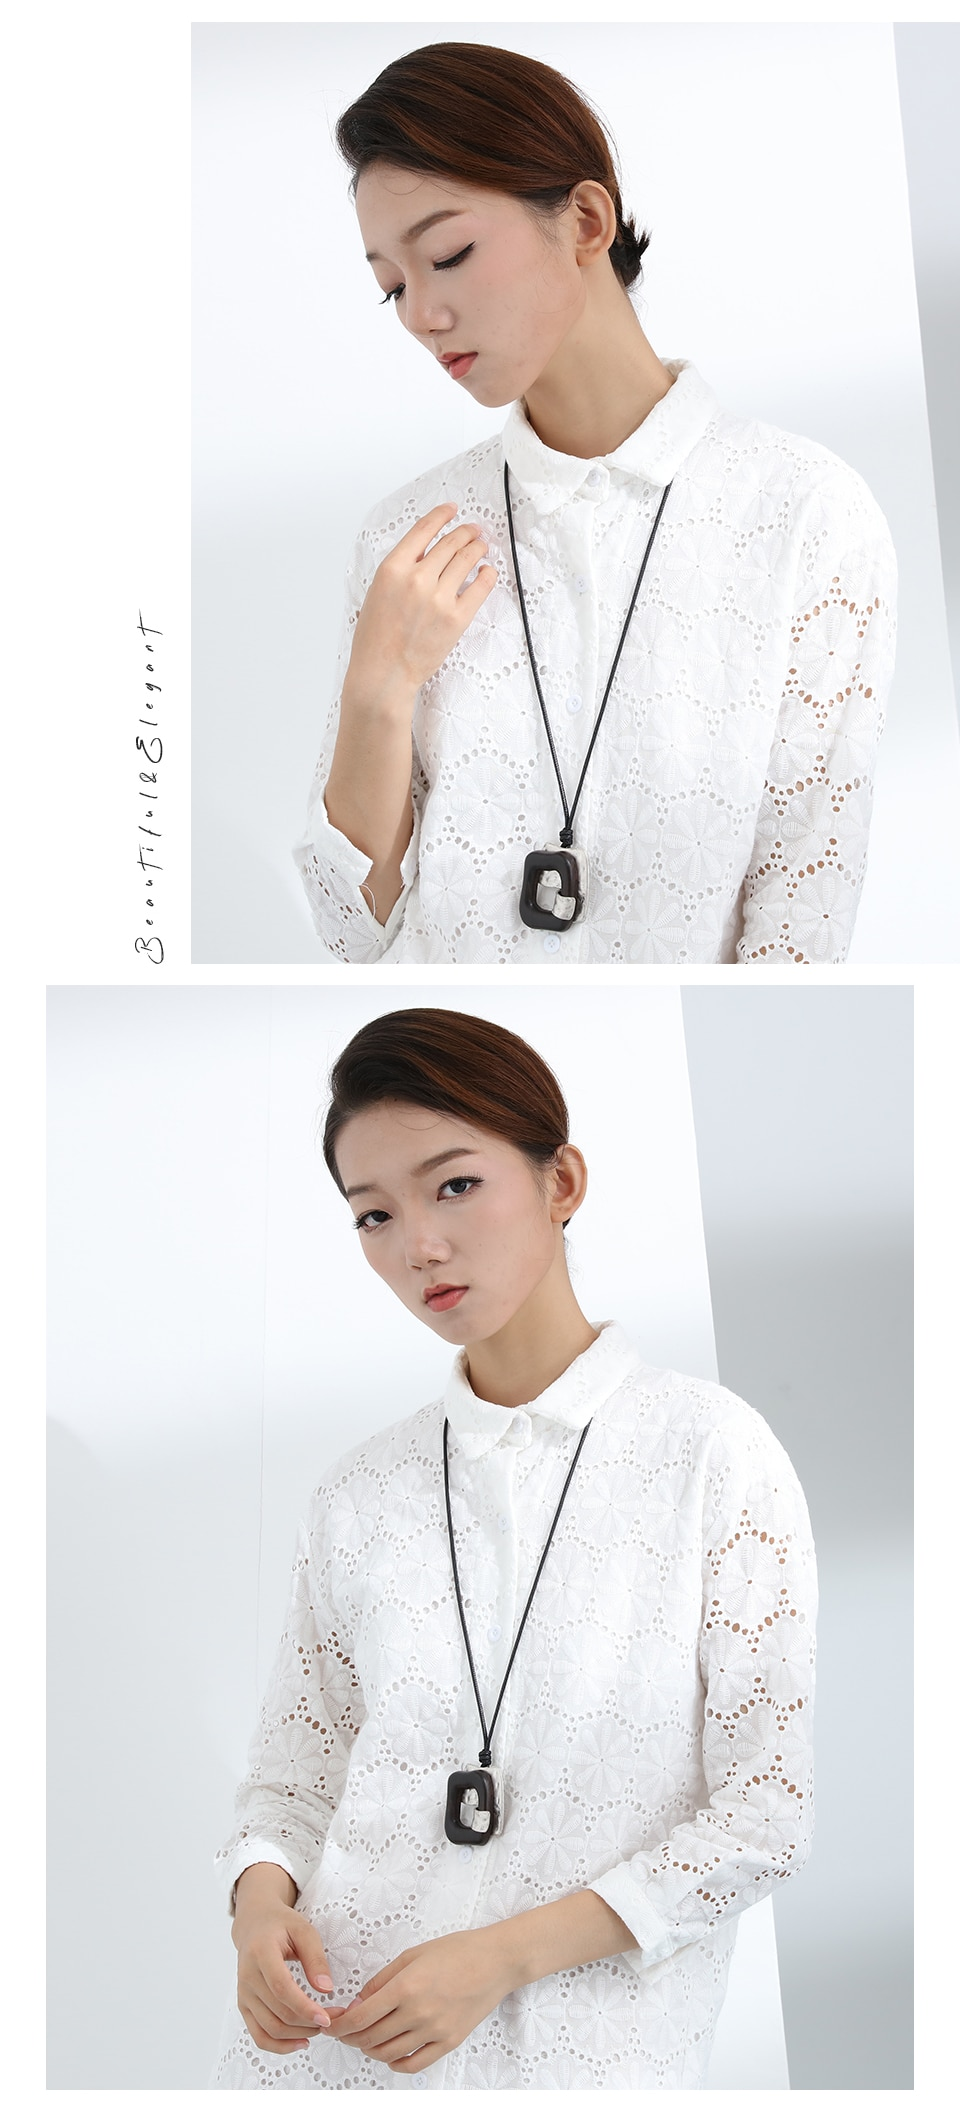 Hyperbole Pendant&Necklaces for Female Adjustable Wood Pendant Handmade Necklace Necklace Sweater Rope Chain Women Jewelry